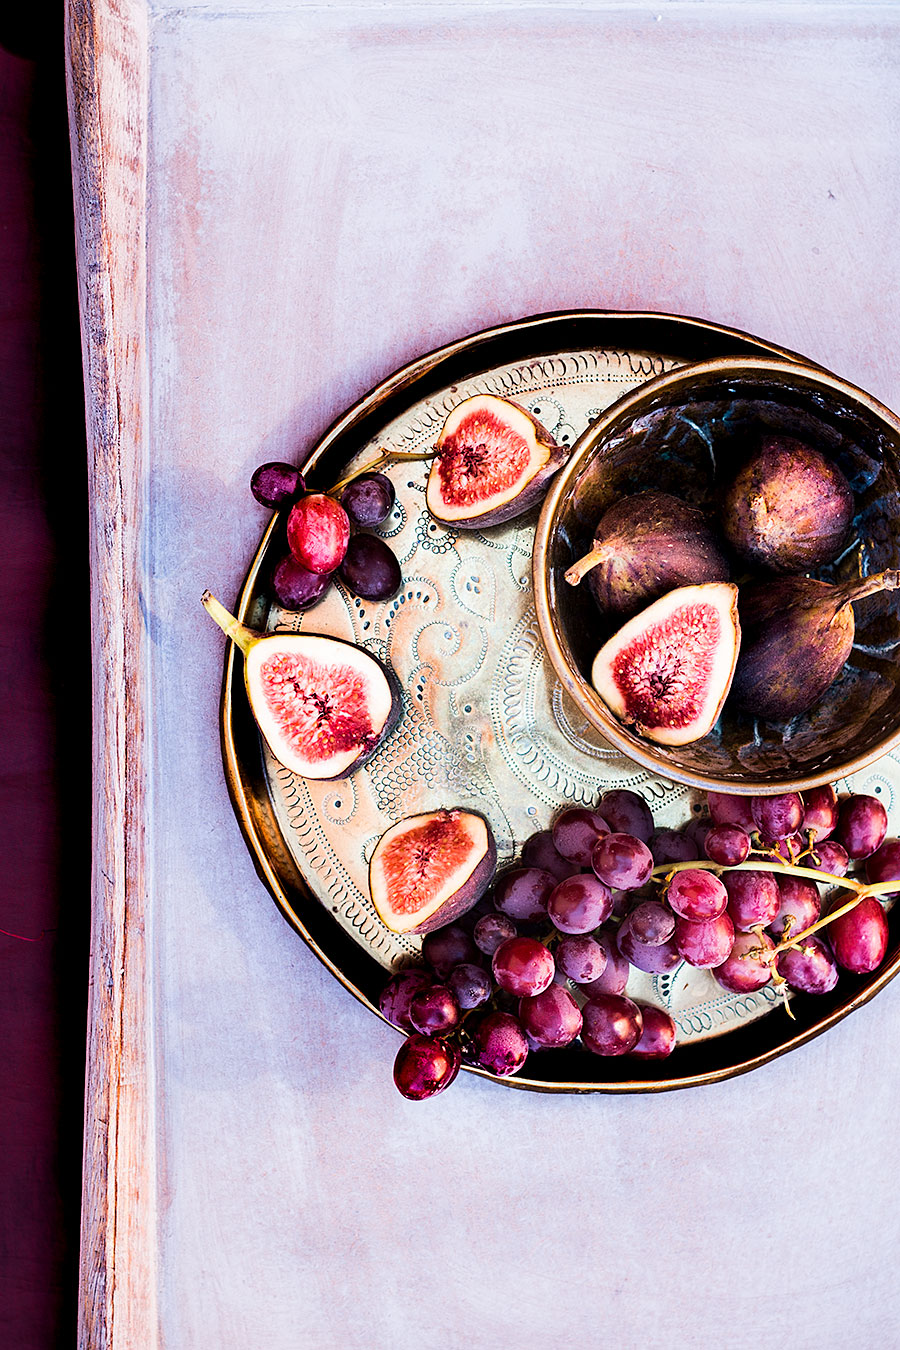 Figs and grapes by Laura Domingo